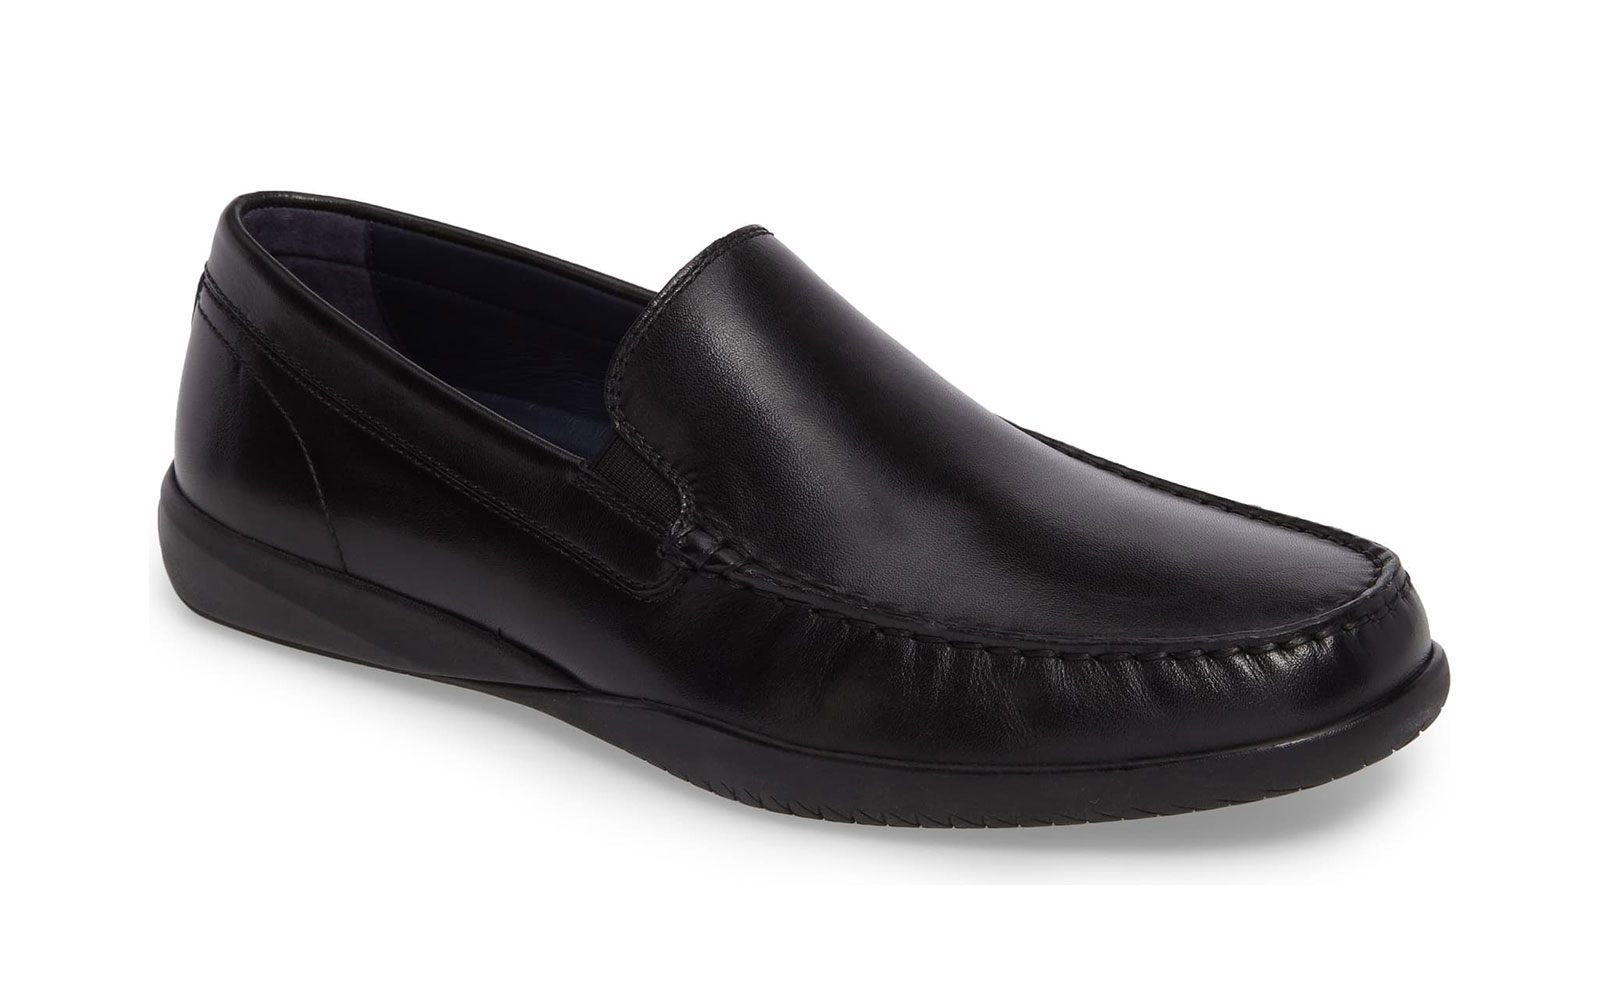 Lovell 2 Loafer COLE HAAN